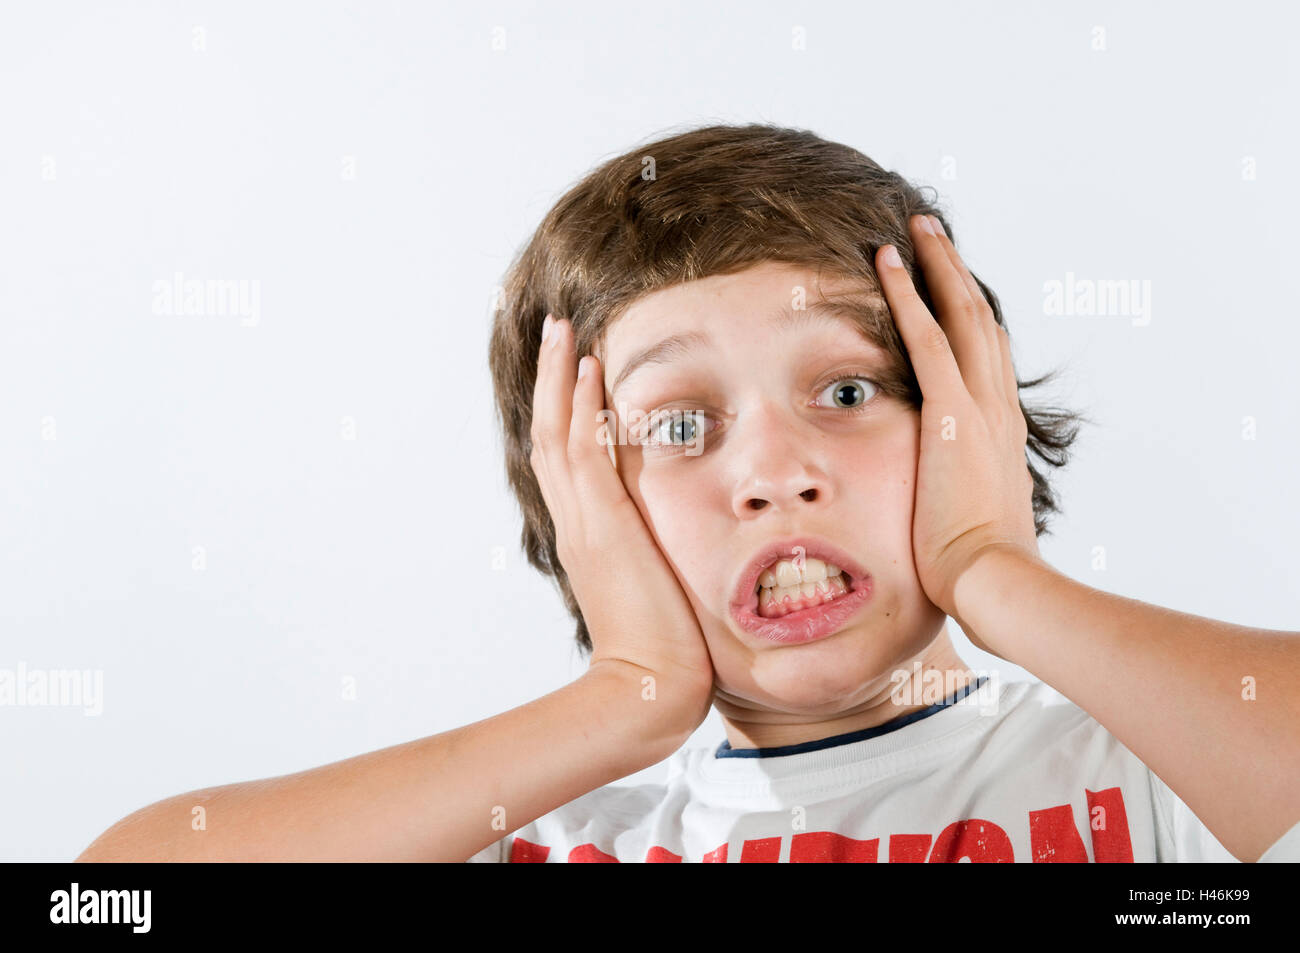 Ten-year boy presses palms on his cheeks with astonished face before white background. - Stock Image